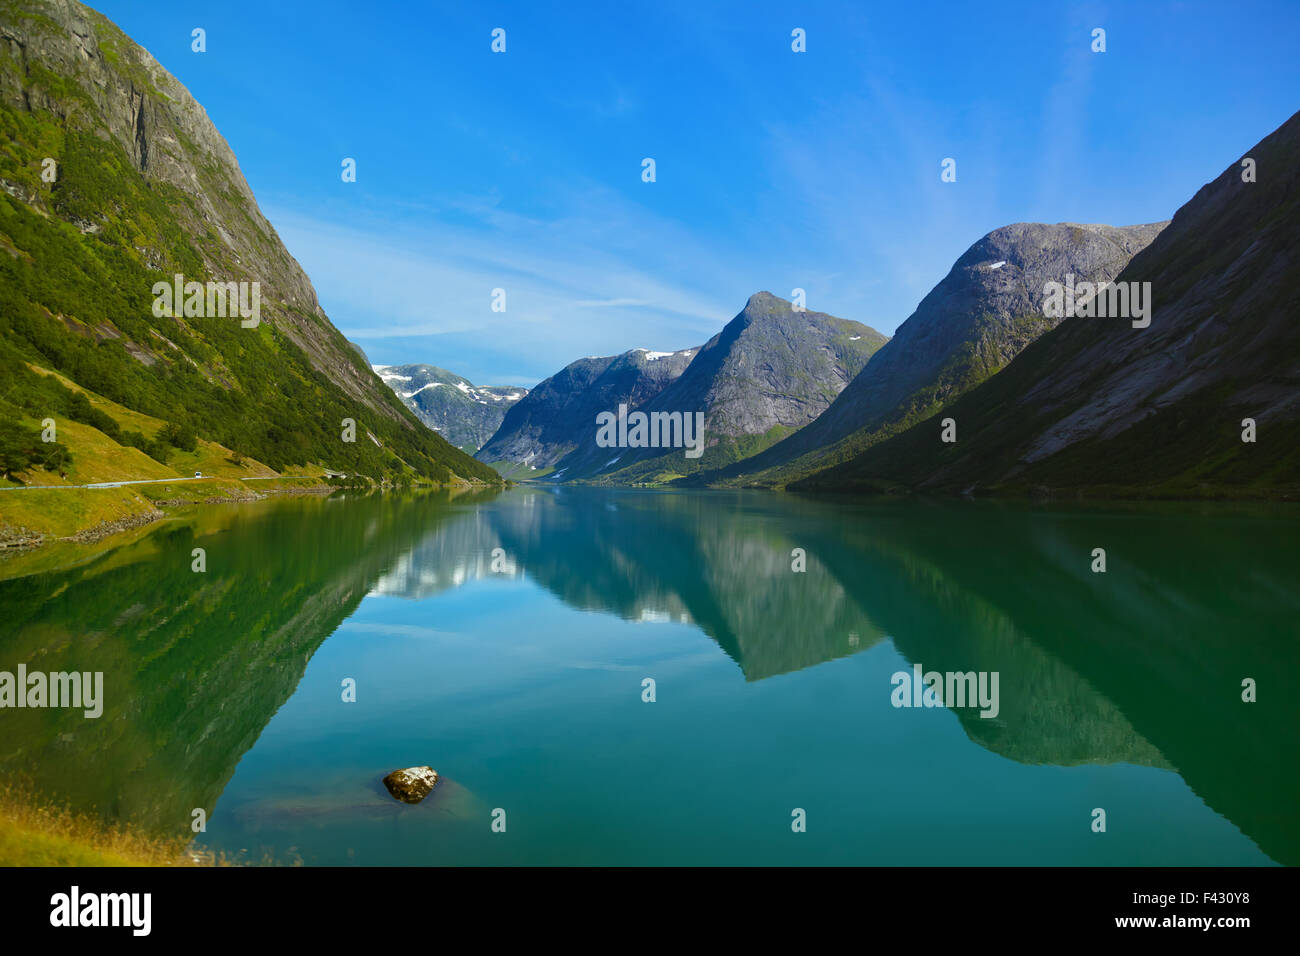 Fjord in Norway - Stock Image